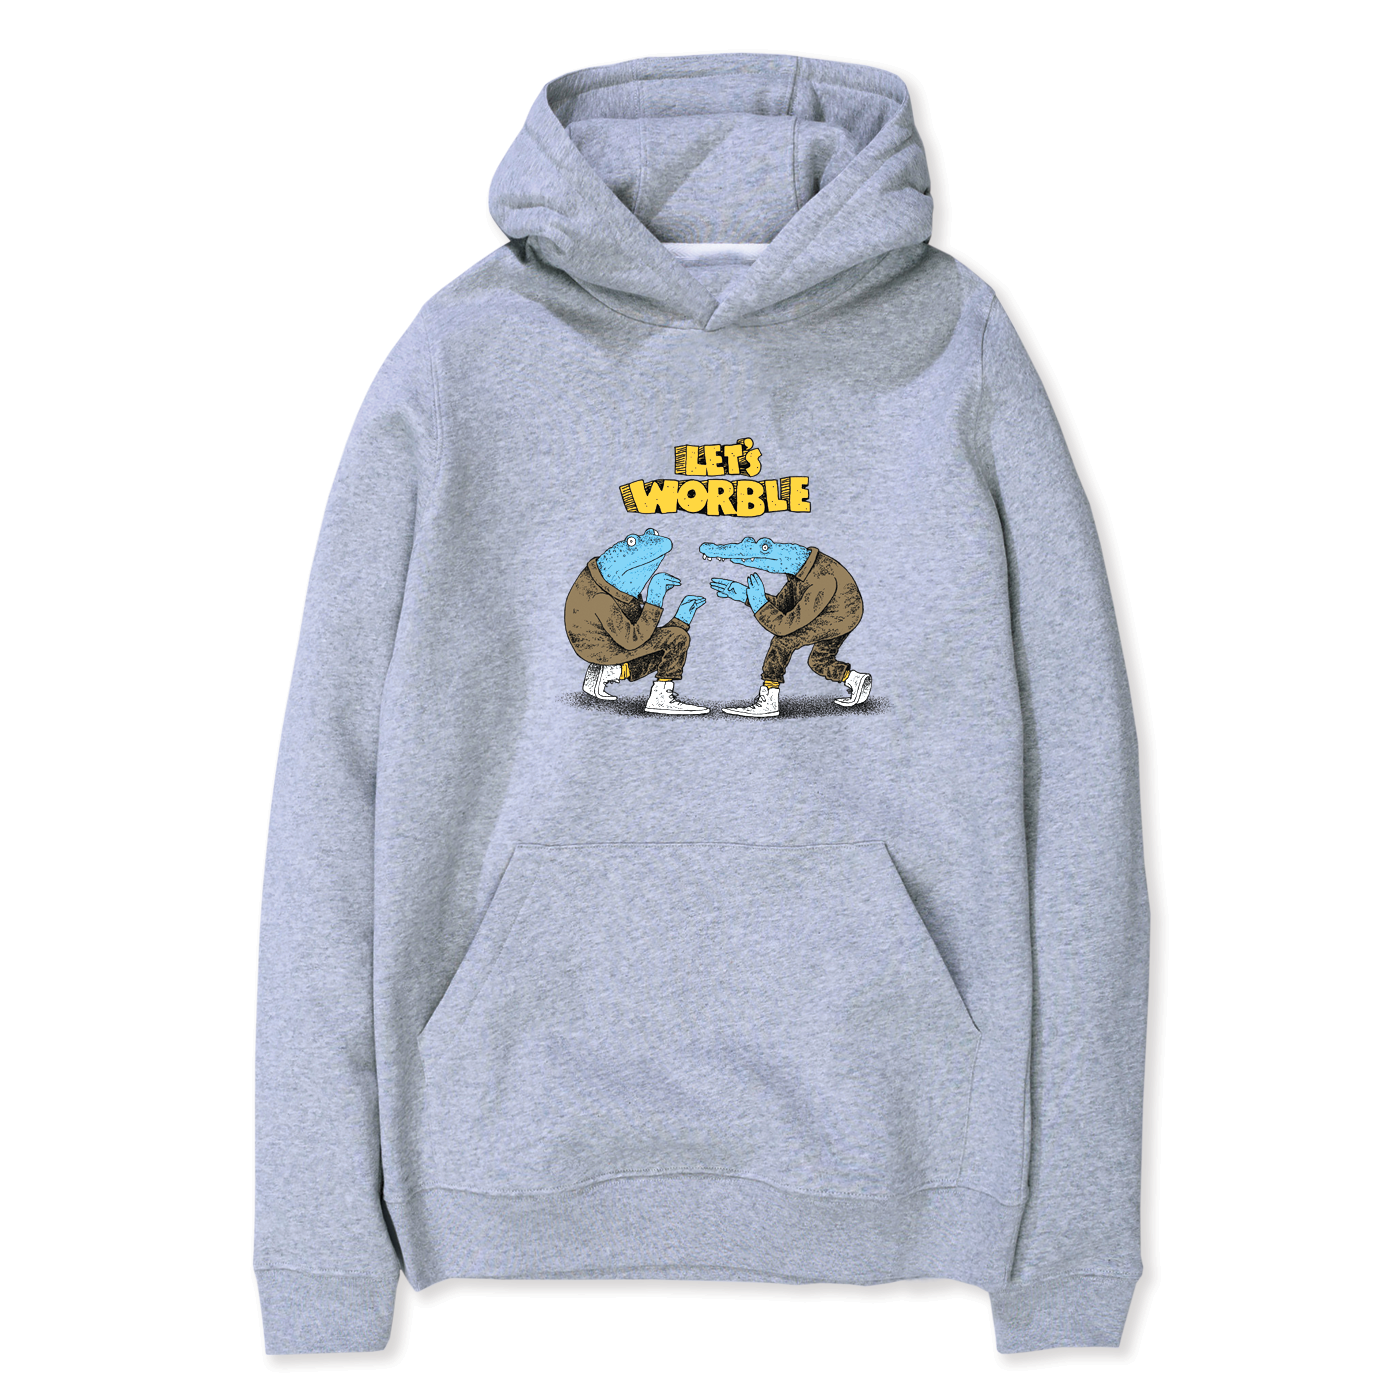 LET'S WORBLE HEATHER GRAY HOODIE